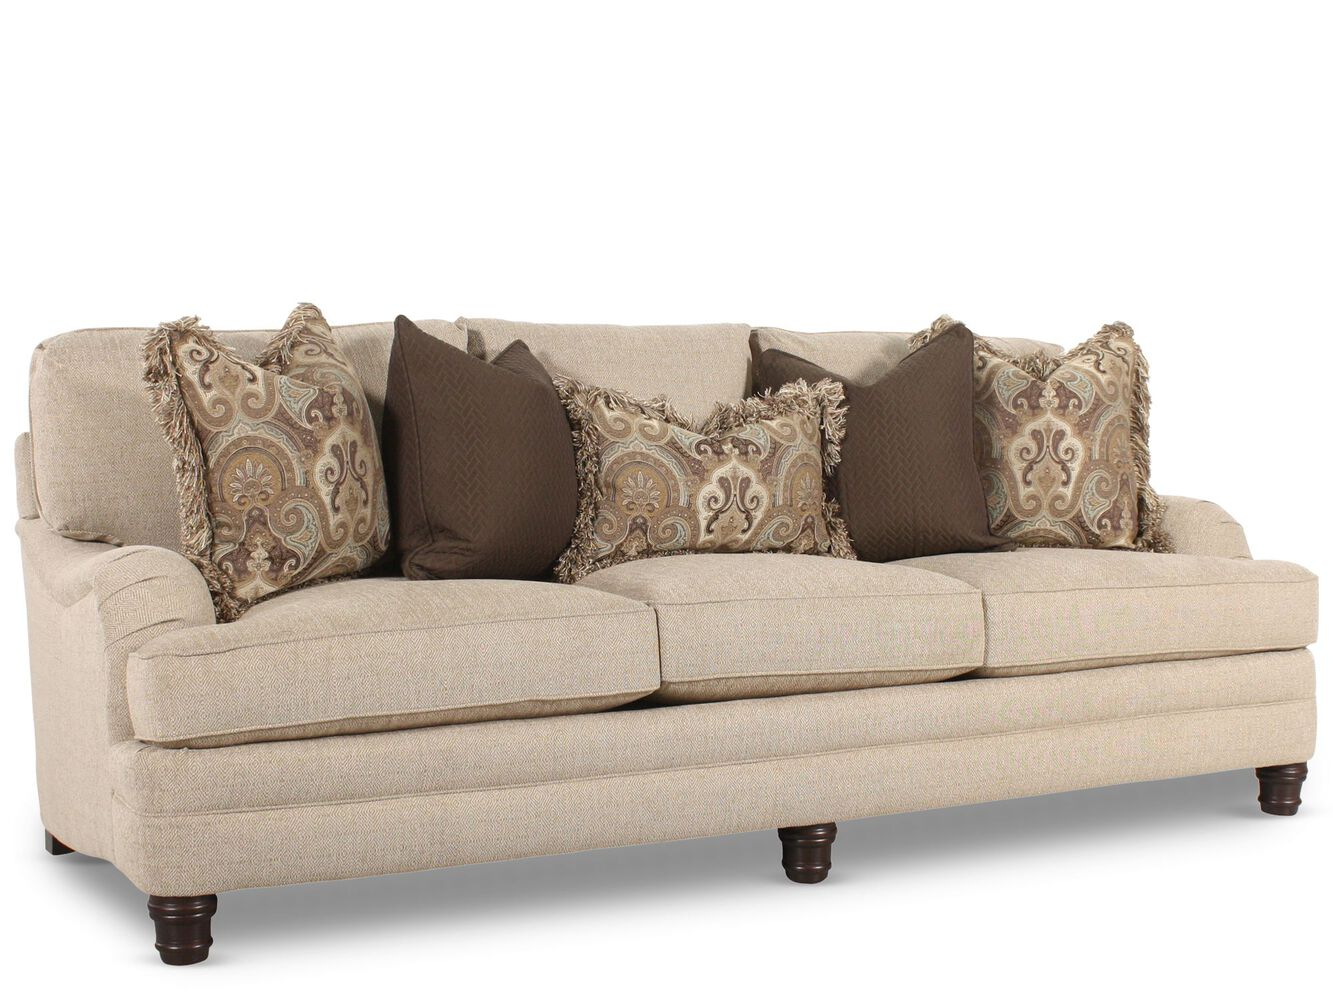 Bernhardt tarleton sofa mathis brothers furniture for Bernhardt living room furniture